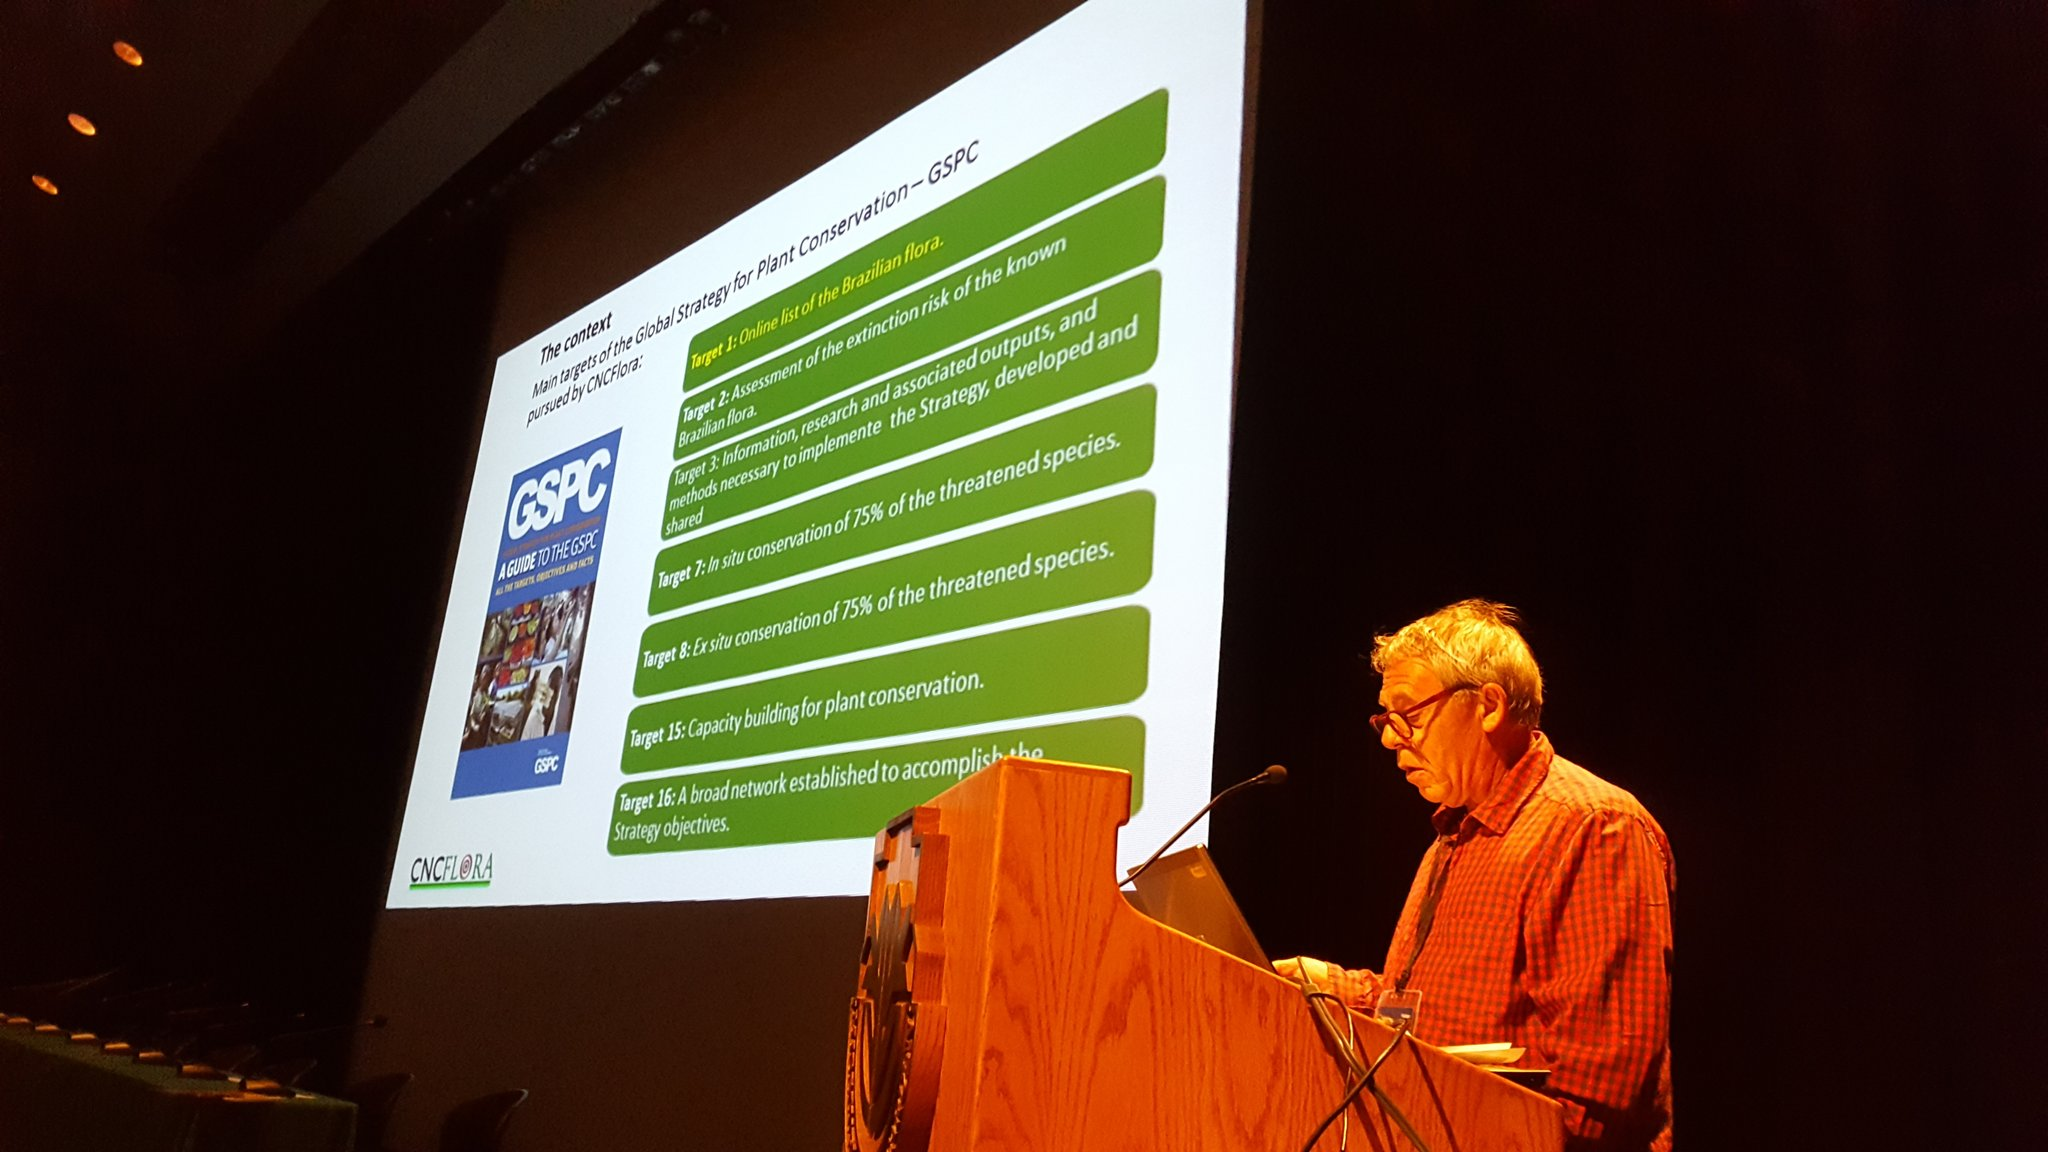 GSPC has been hugely important in pushing forward plant conservation in #Brazil. Gustavo Martinelli at #GPPC2016 https://t.co/Q5MdNNJm78